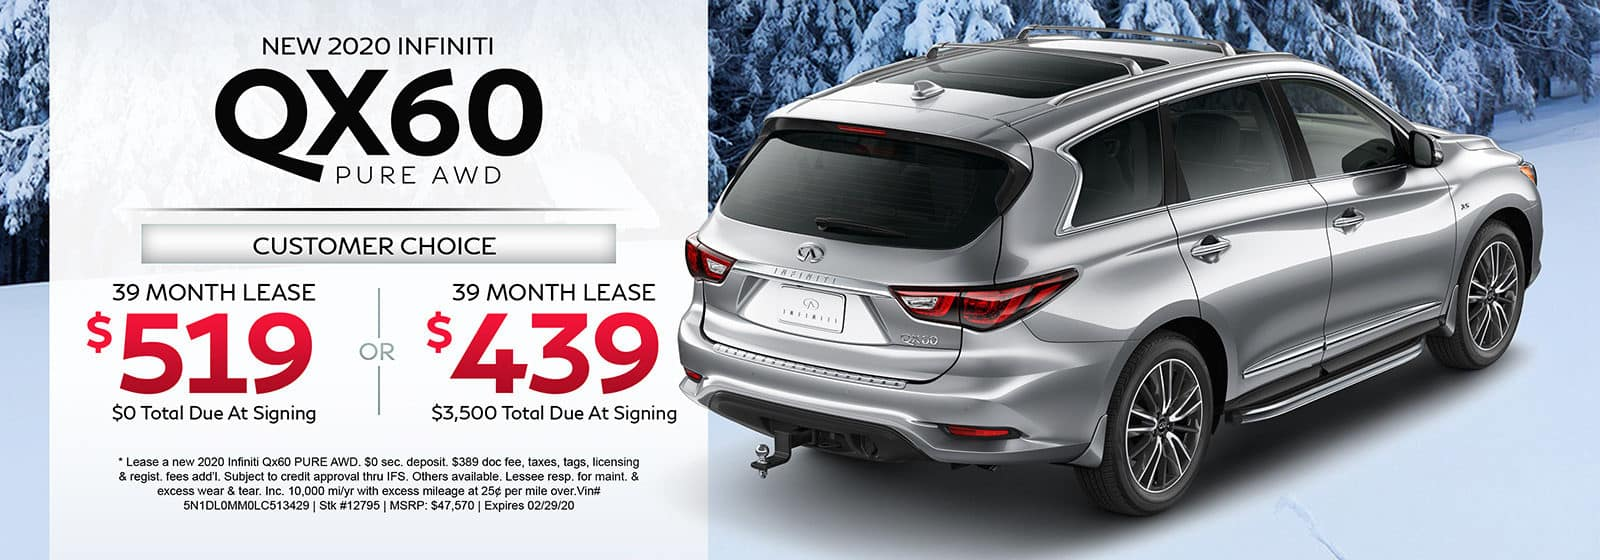 Lease a new 2020 INFINITI QX60 PURE AWD for 39 months.